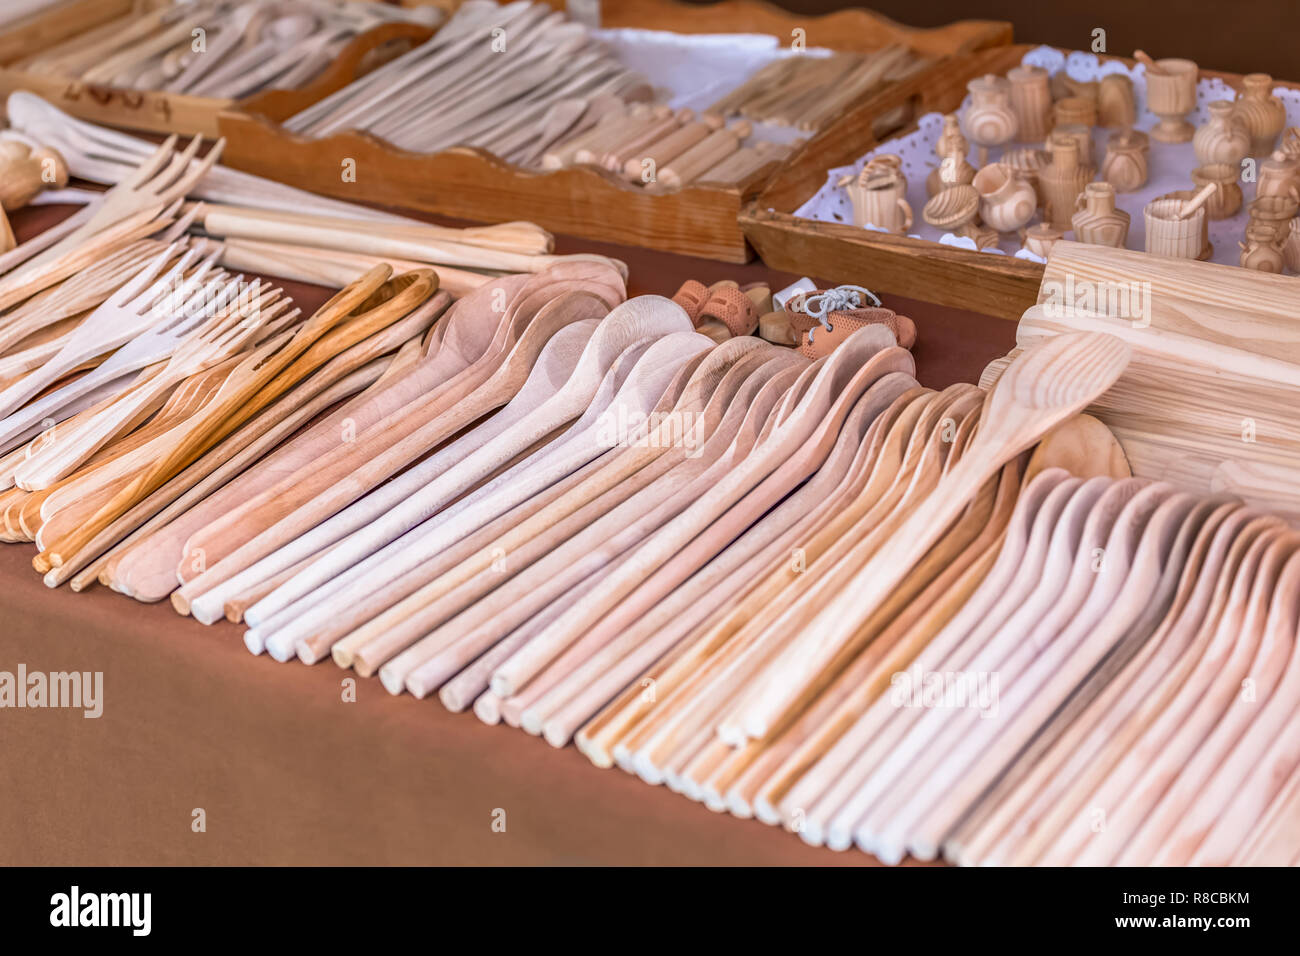 Wooden kitchen utensils, in traditional market... - Stock Image